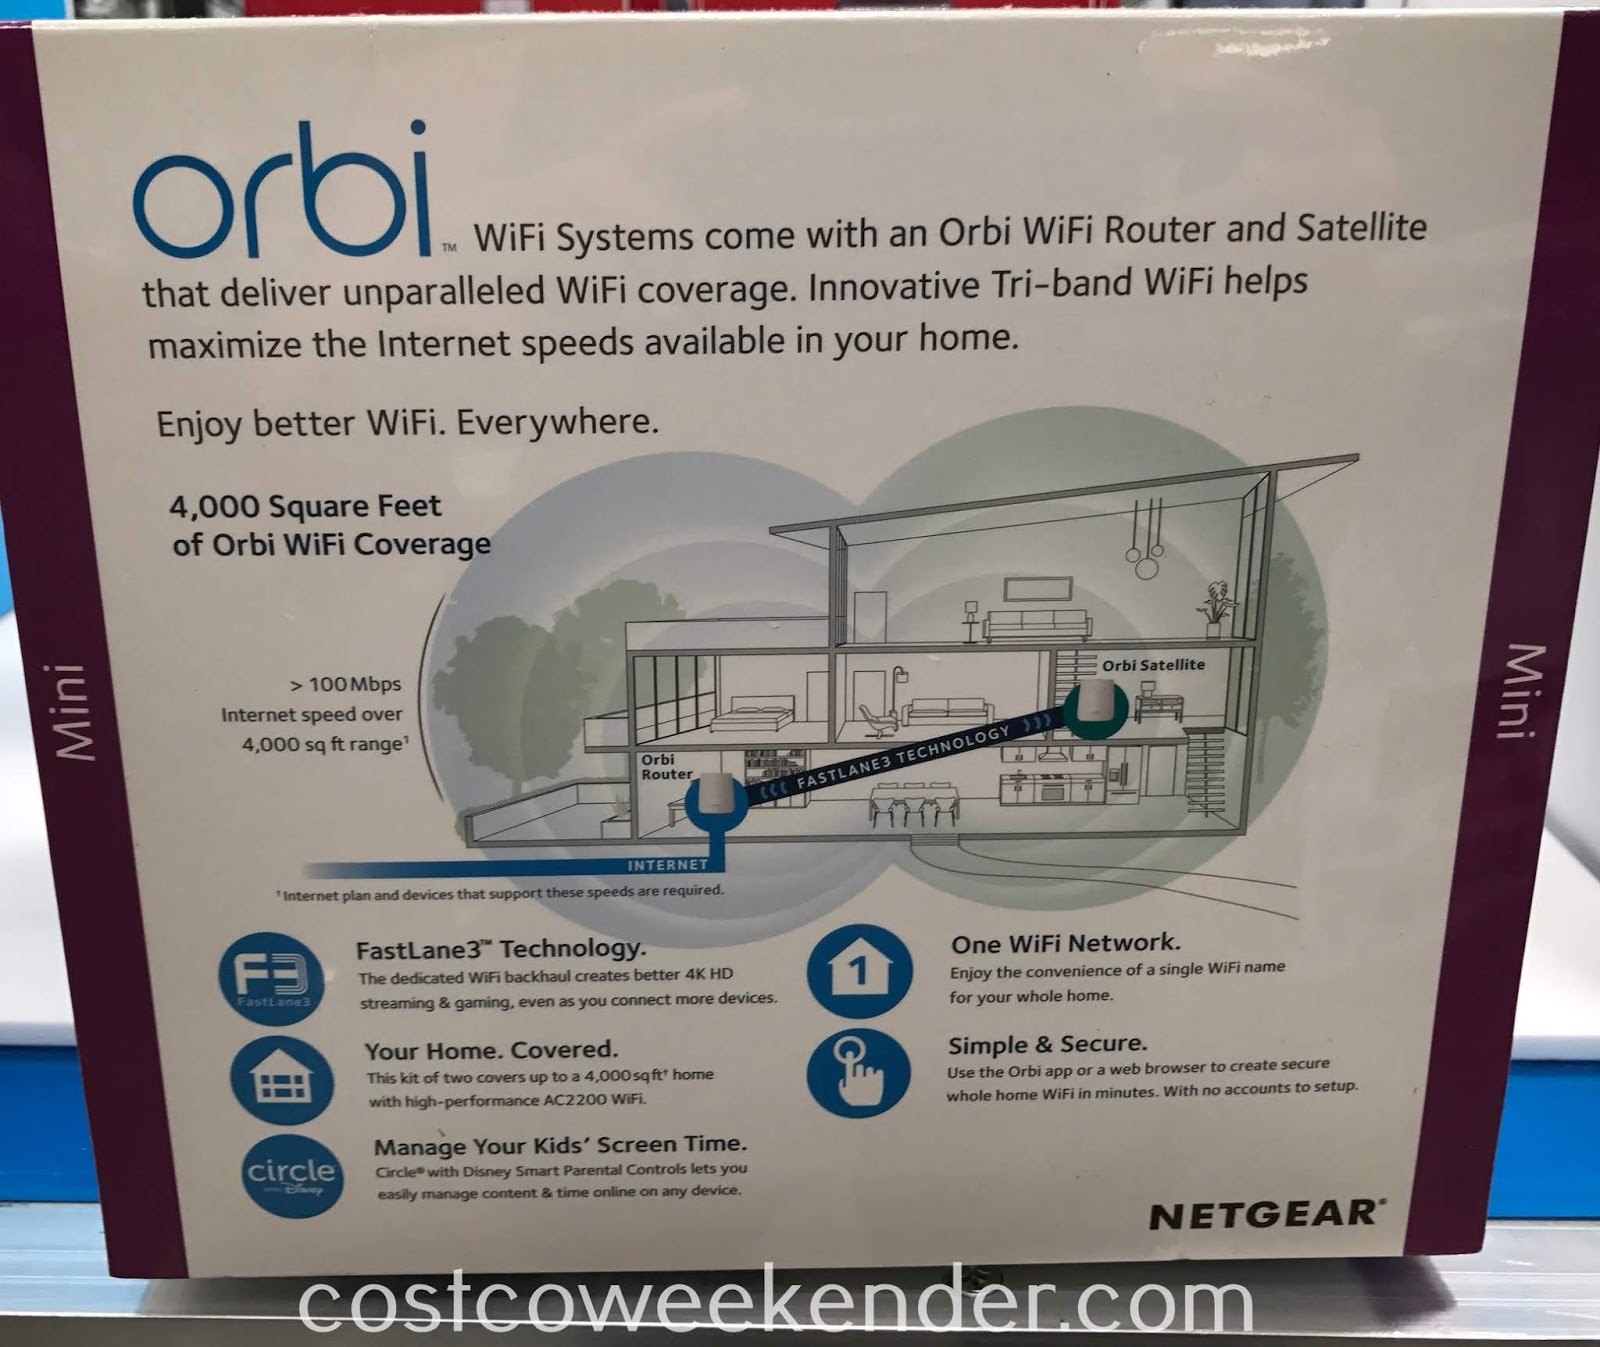 Costco 1218354 - Netgear Orbi WiFi System AC2200 (RBK22) gives you better streaming gaming, and internet browsing experience